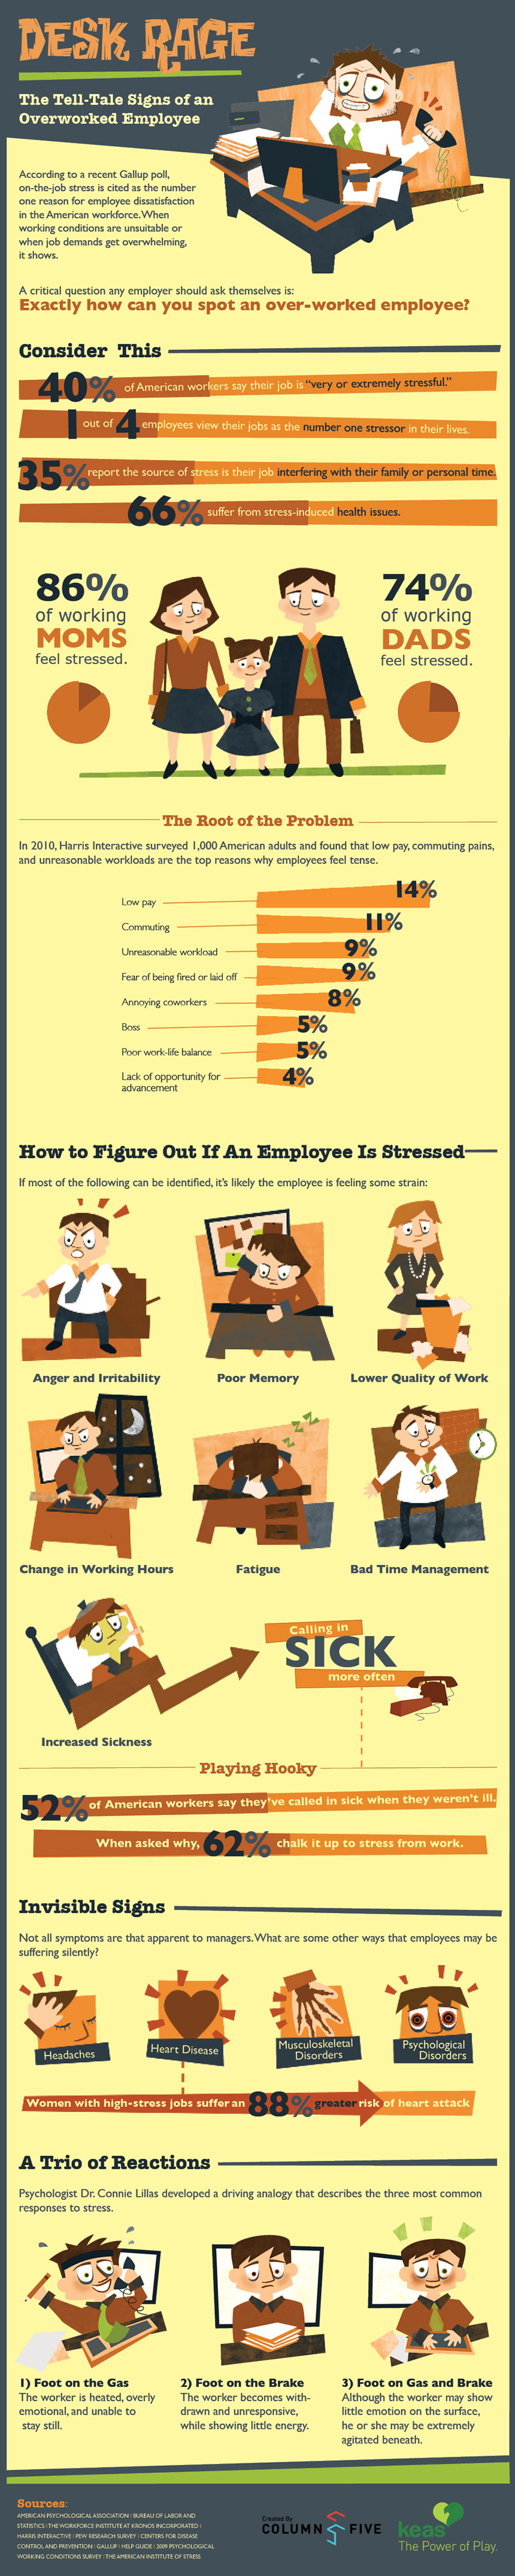 Desk-Rage-The-Tell-Tale-Signs-Of-An-Overworked-Employee-infographic